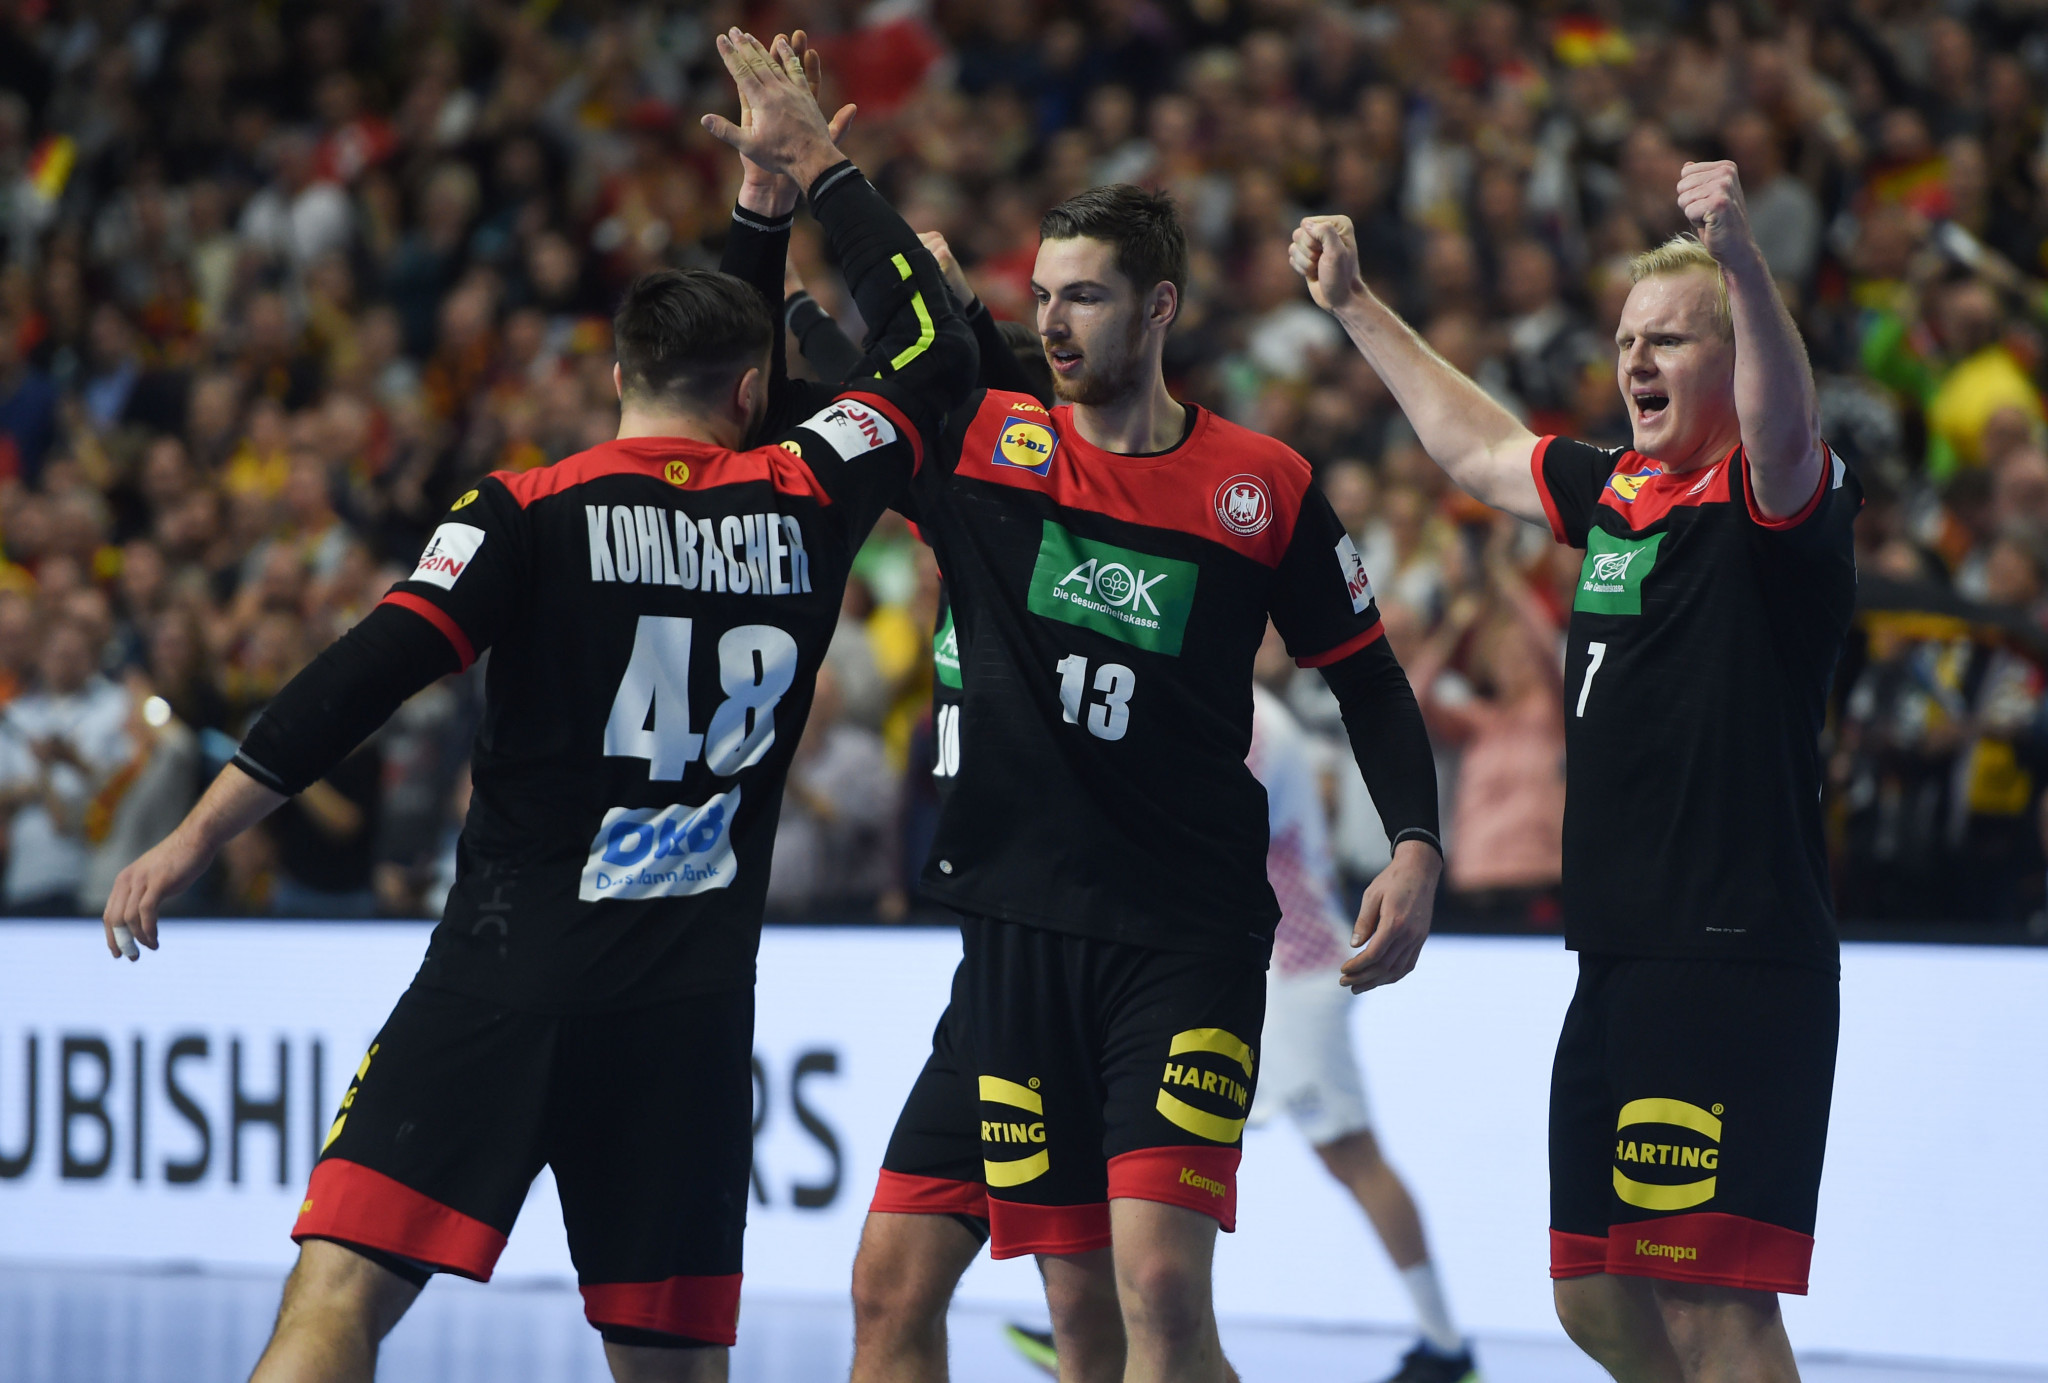 Germany and France seal semi-final spots at IHF Men's Handball World Championship